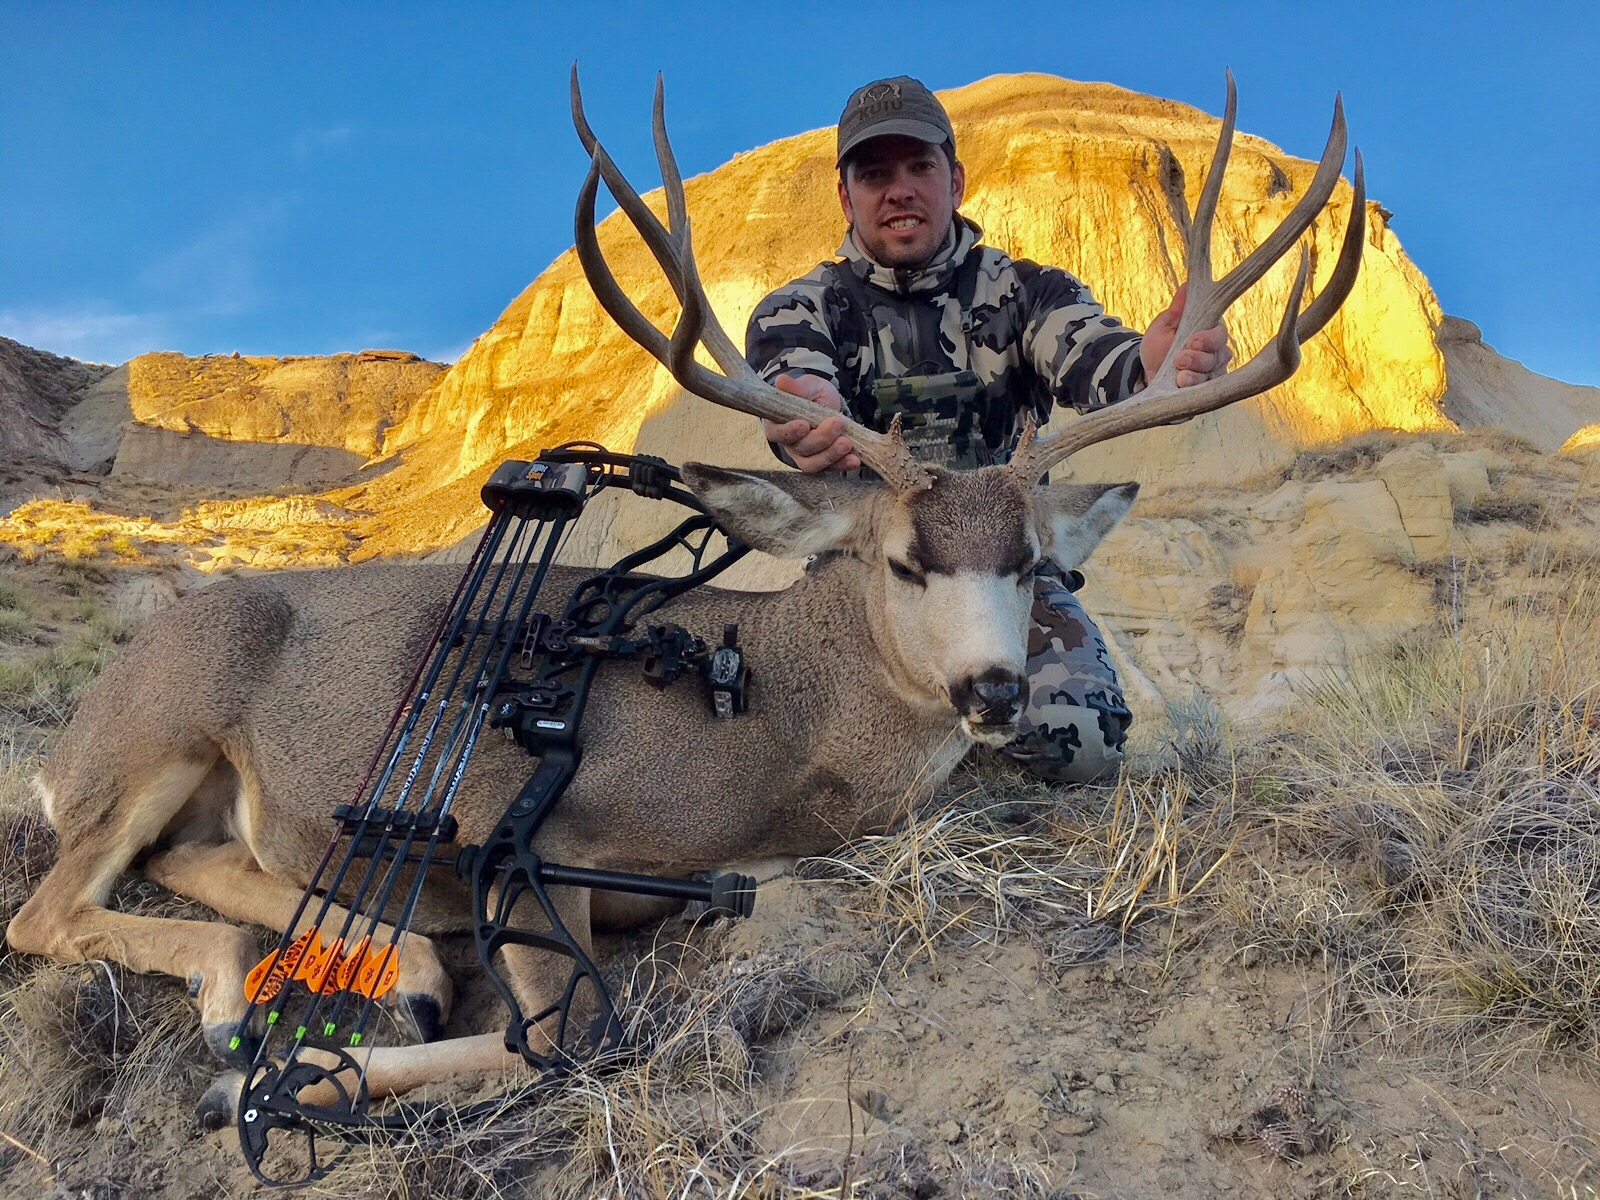 Jeremy with an Awesome Archery Mule Deer